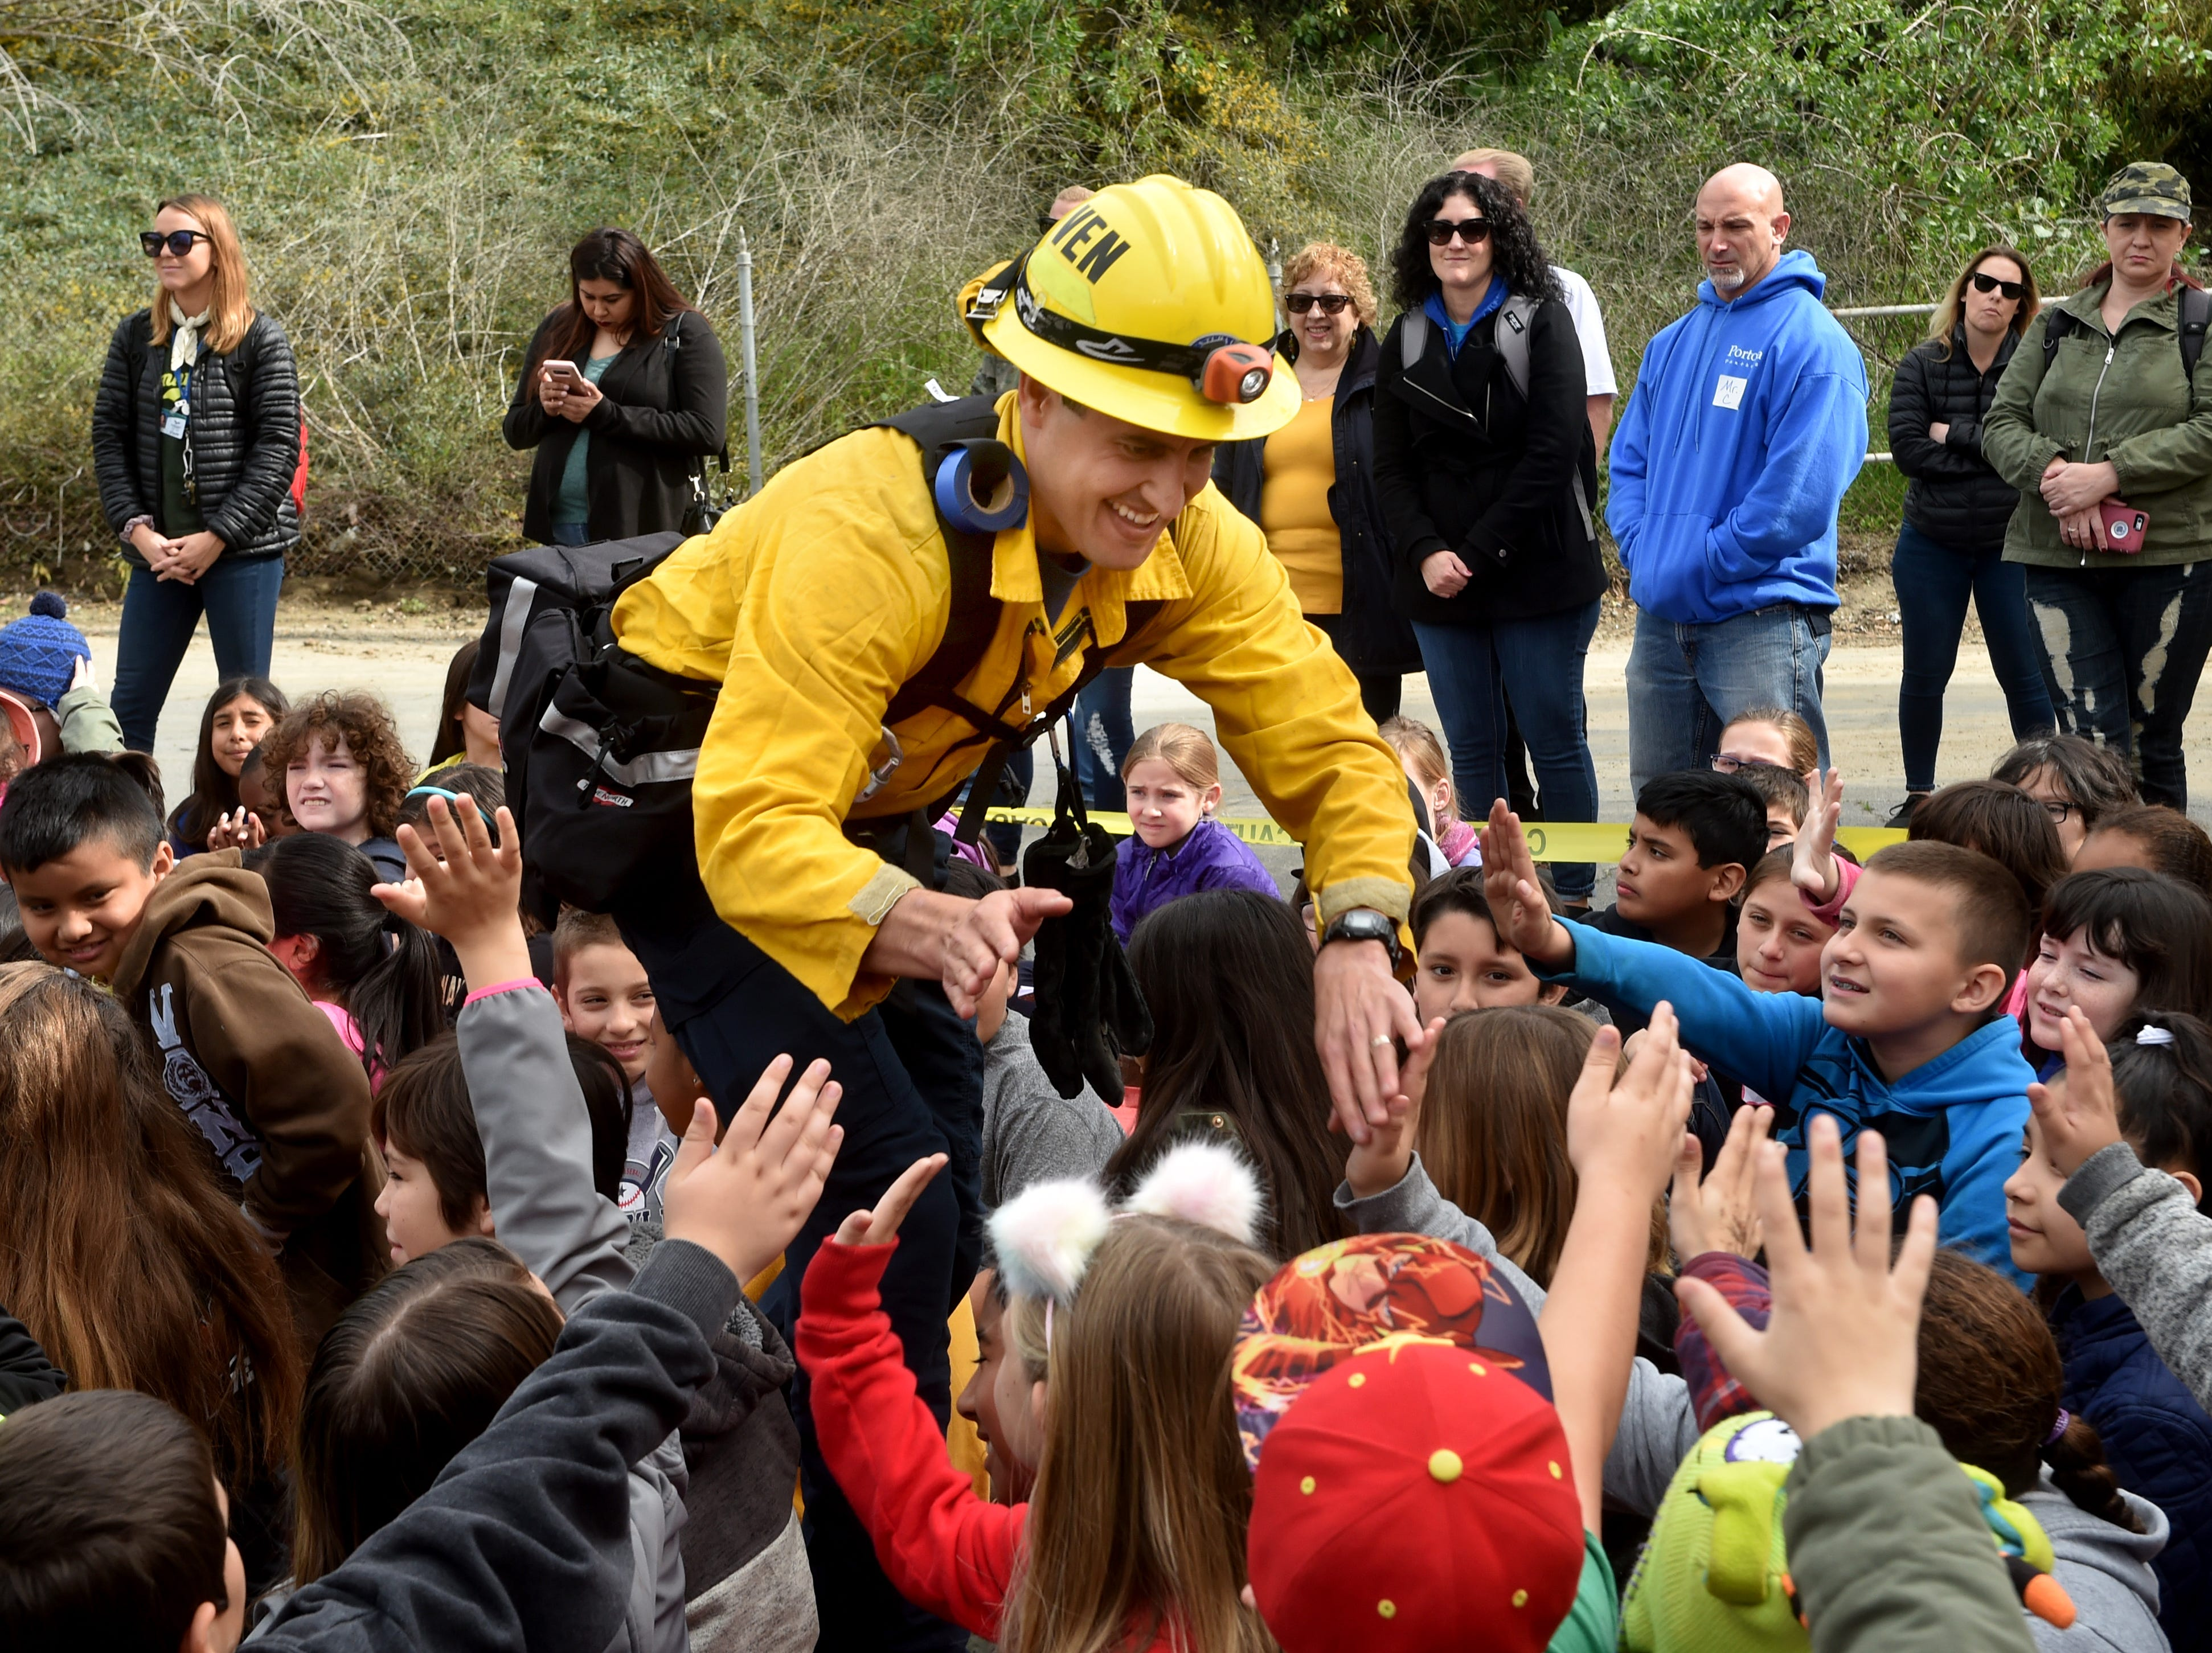 Ventura City firefighter Jeffrey Edsall hands out high-fives to a crowd of fourth-graders at one of three safety demonstrations during the city's annual Fire Safety Day on Tuesday.